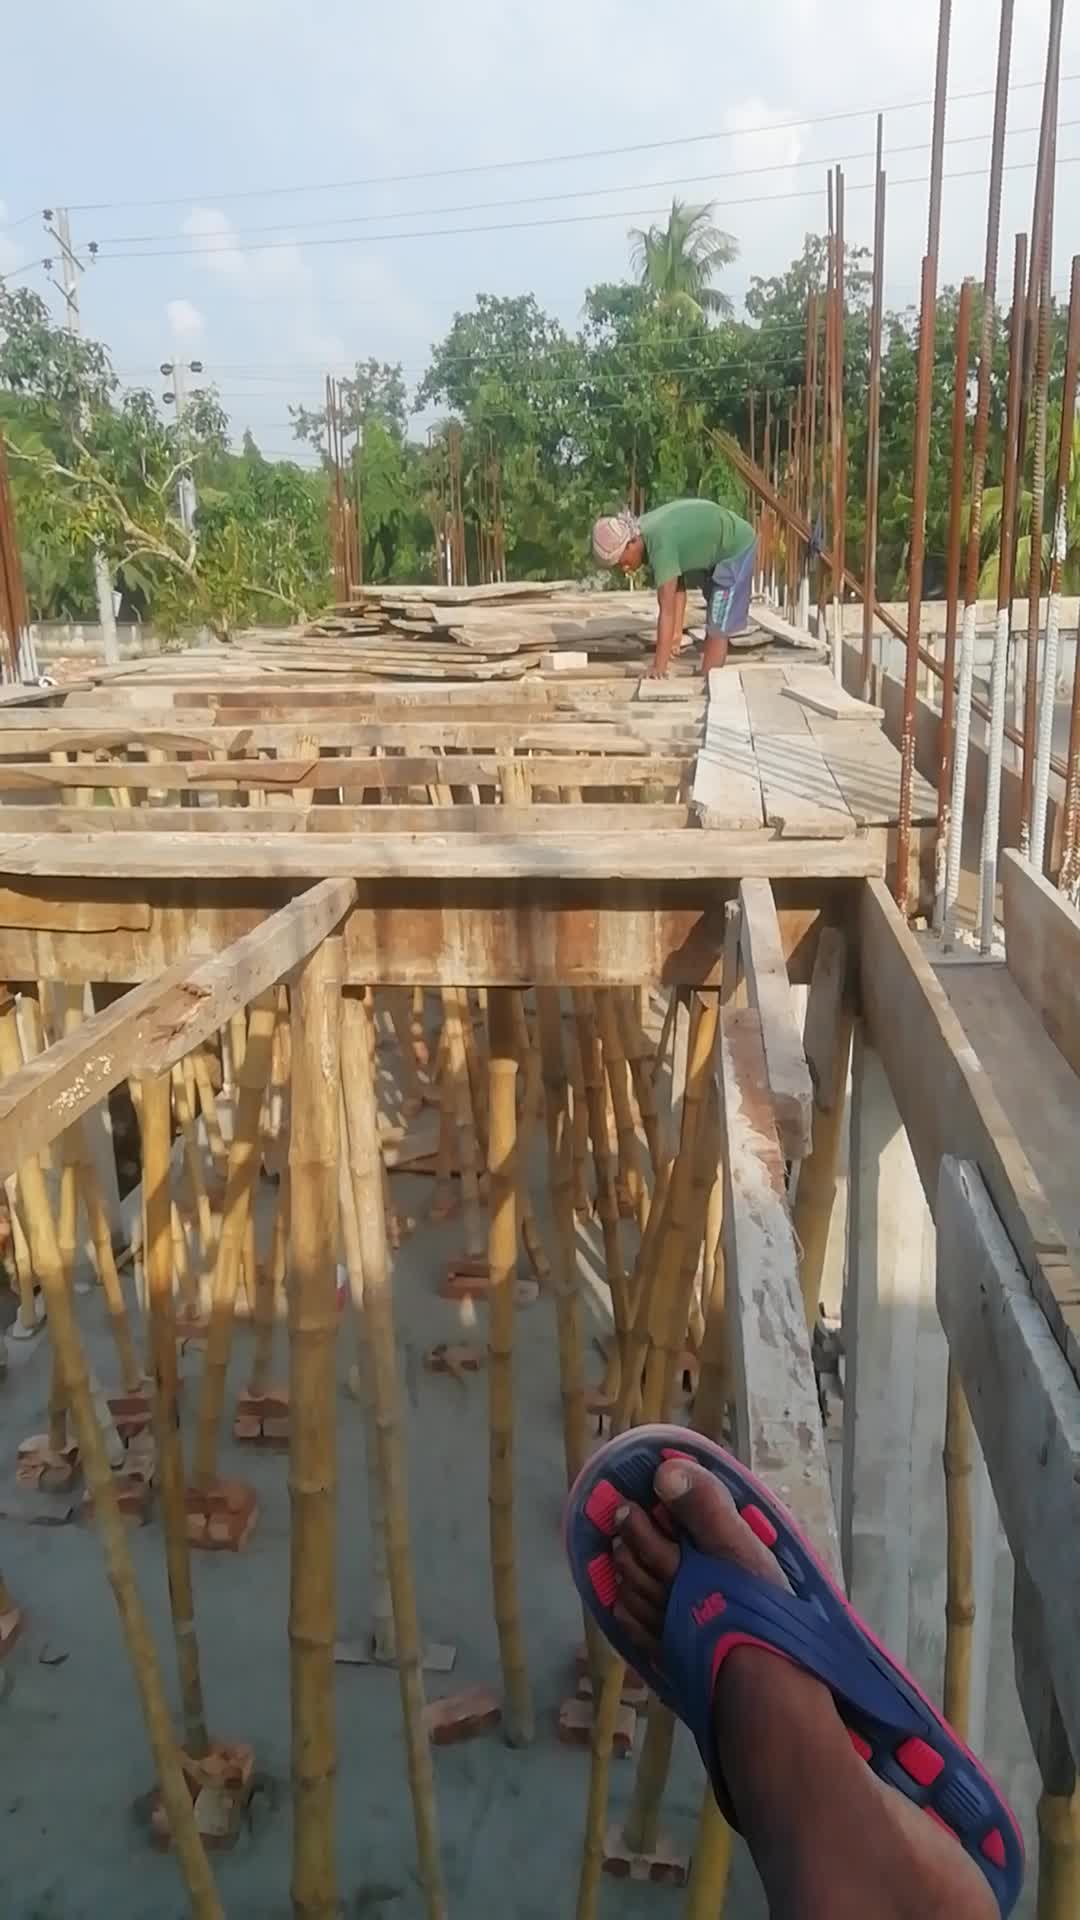 Building work is going on in Satkhira district